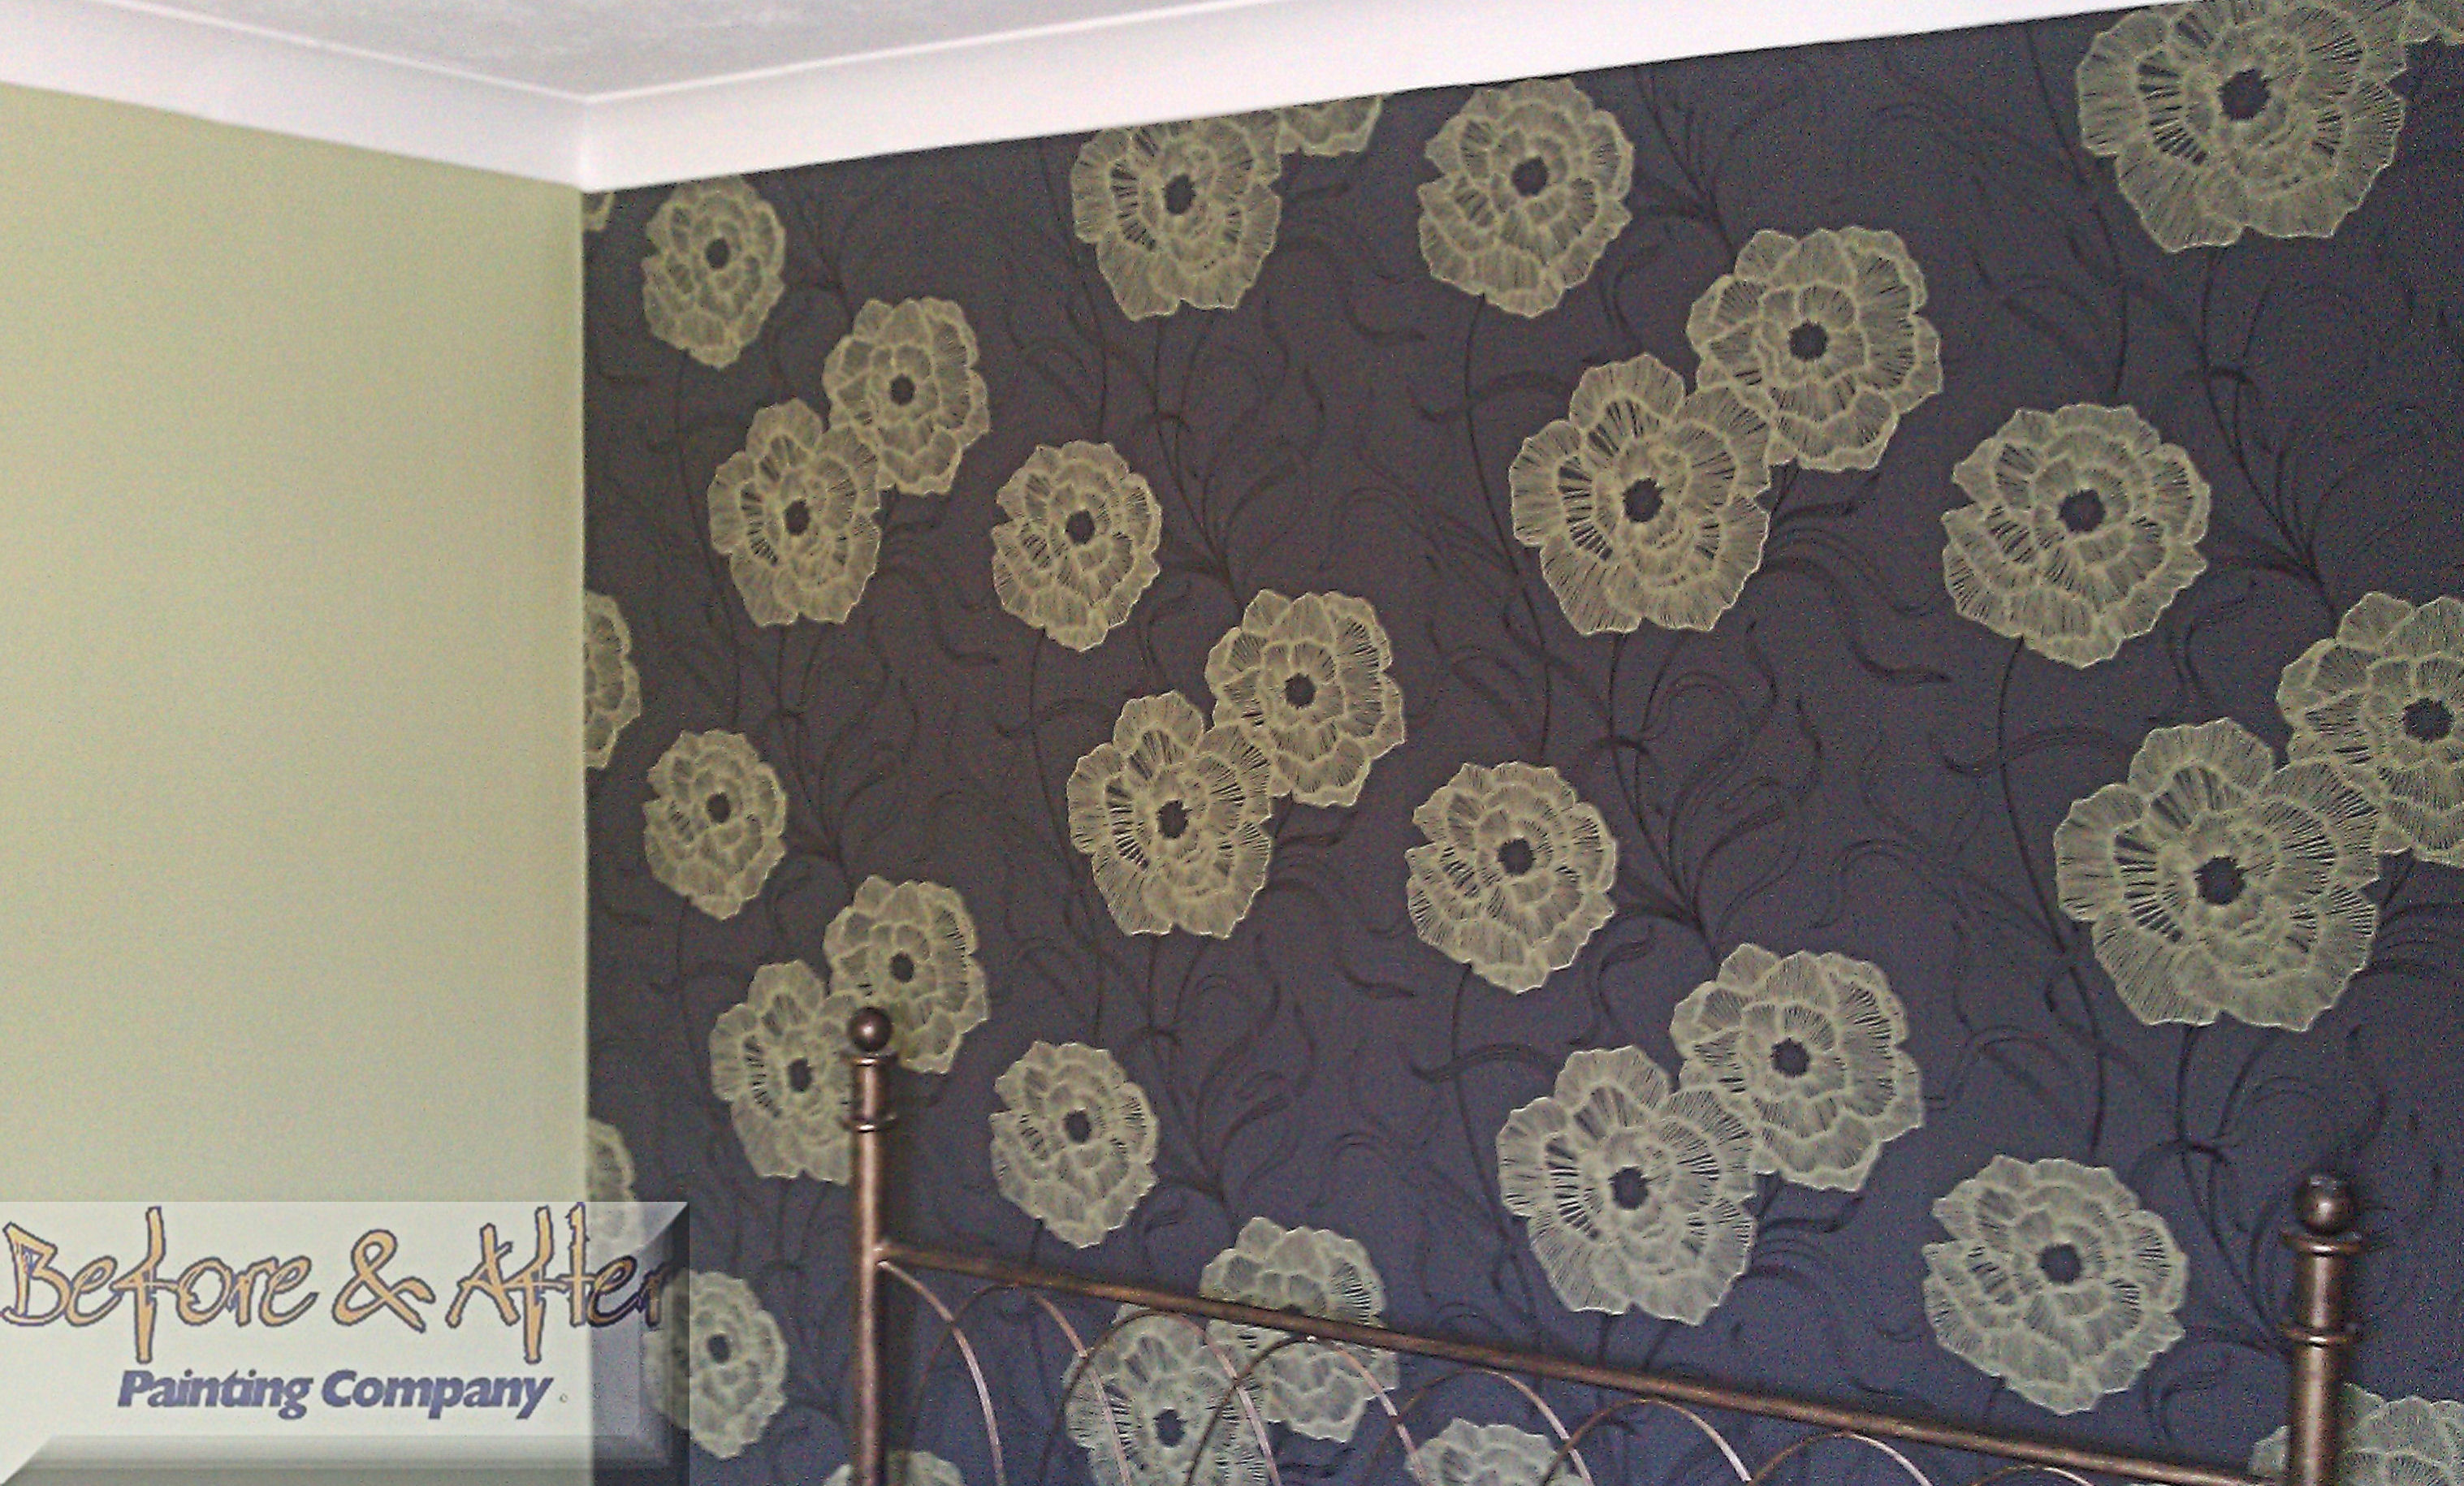 Feature papered wall using Eurostudio Elements